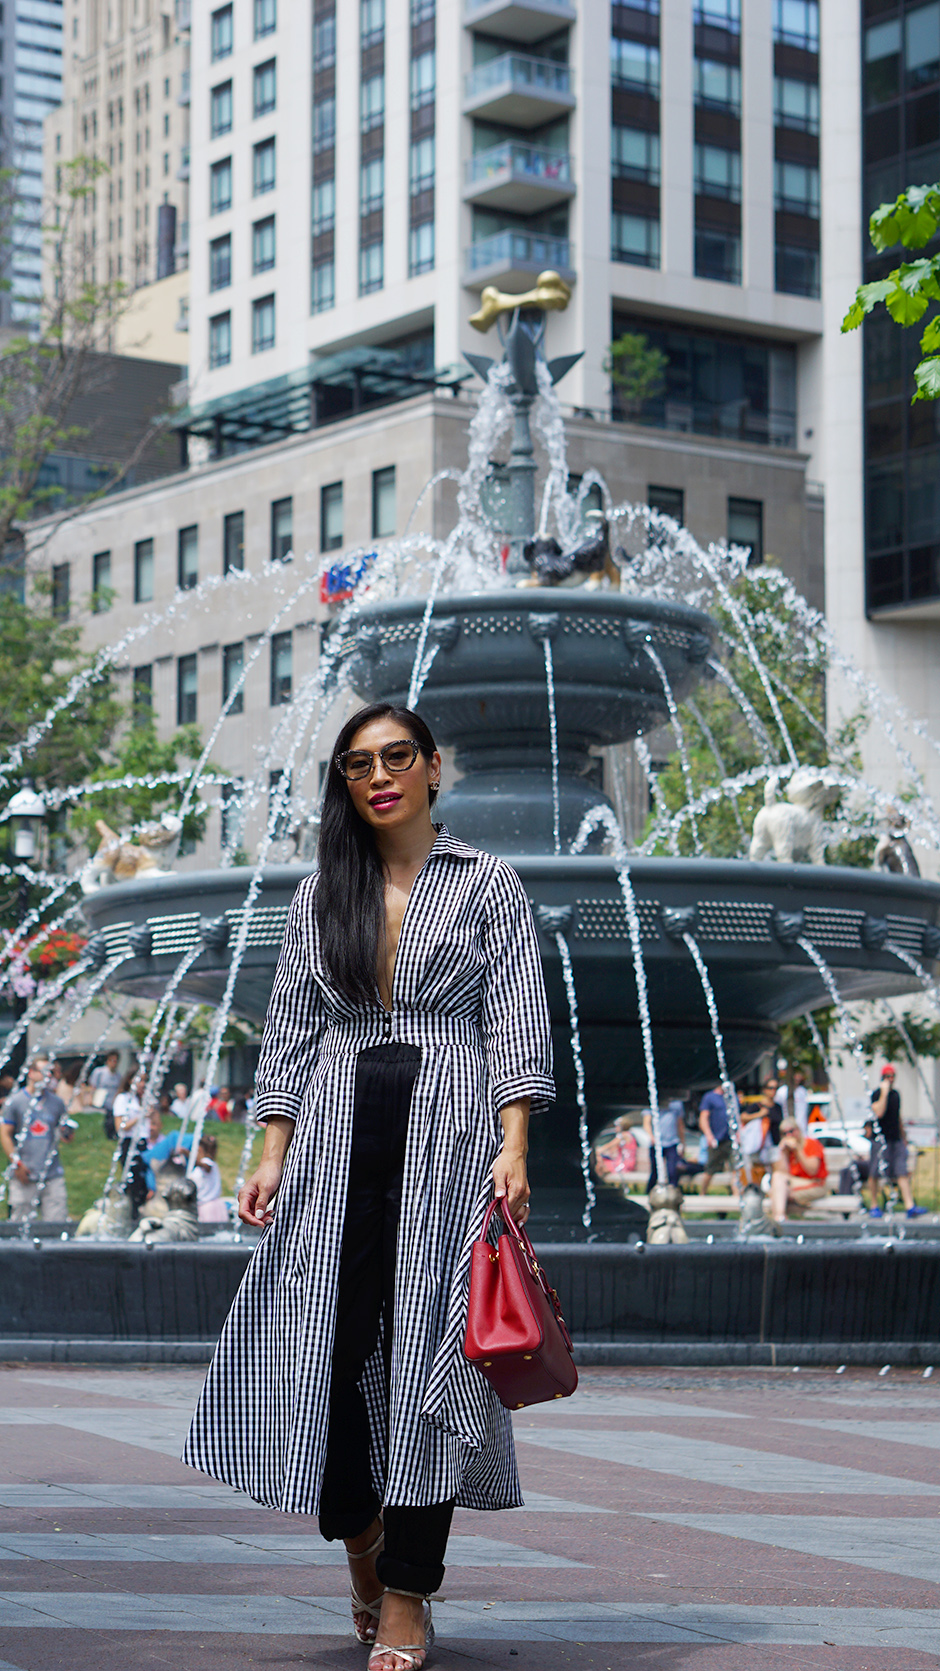 Tips for First Time Solo Travellers #streetstyle #traveltips #travellingsolo #solotravel #outfitideas #falloutfit #outfitinspiration #ginghamoutfit #gingham #check #prada #pradabag #celine #statementheels #statementshoes #parisianstyle #parisian #frenchstyle #toronto #torontobloggers #canadianbloggers #usblogger #americanstyle #americanfashion #miumiu